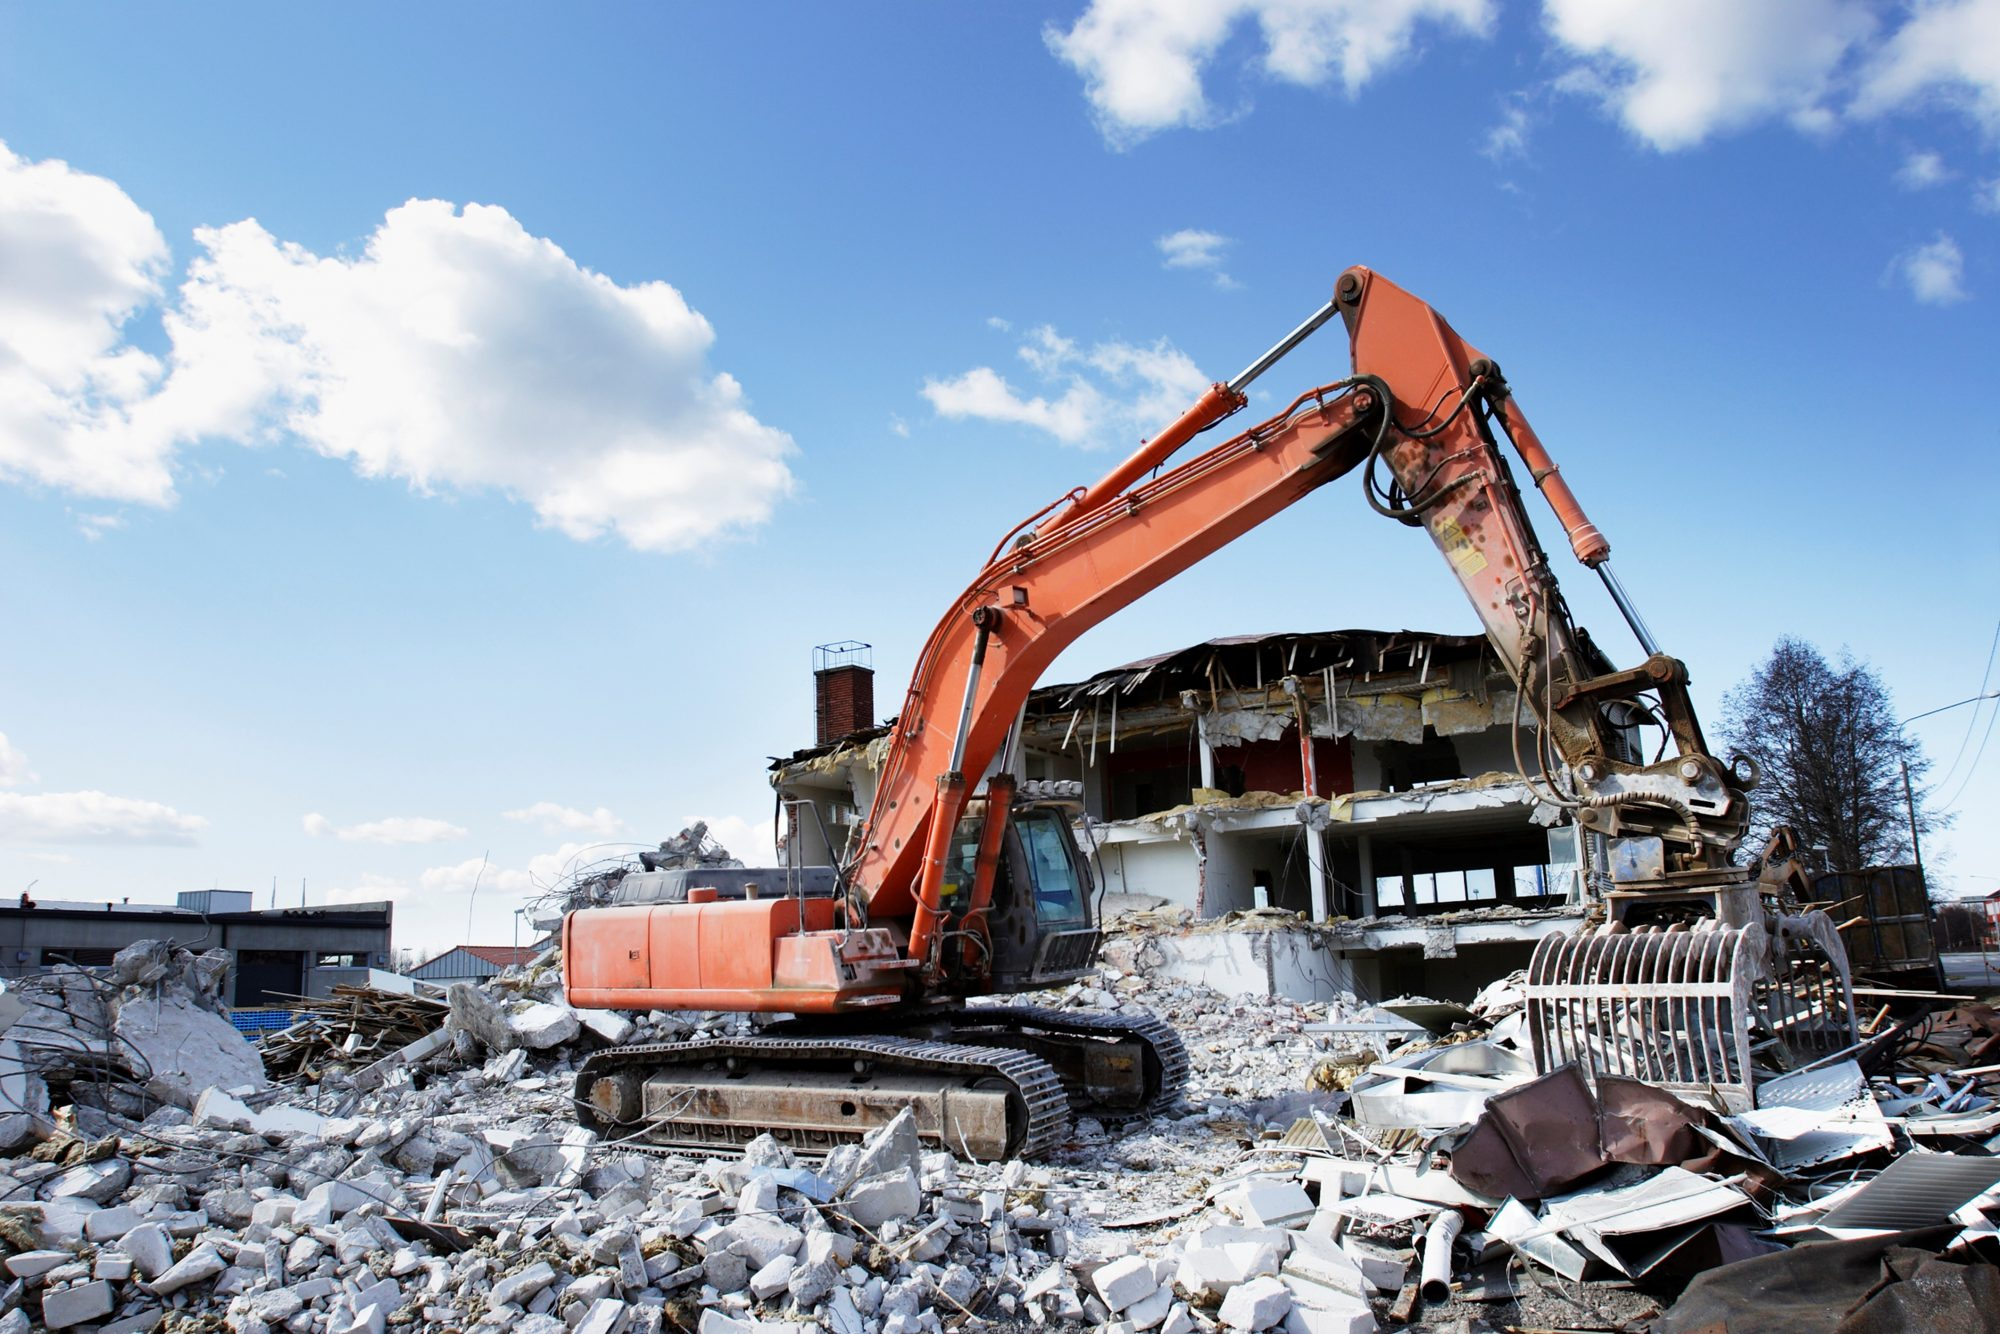 Demolition workers must be better protected in 2020, says Unite